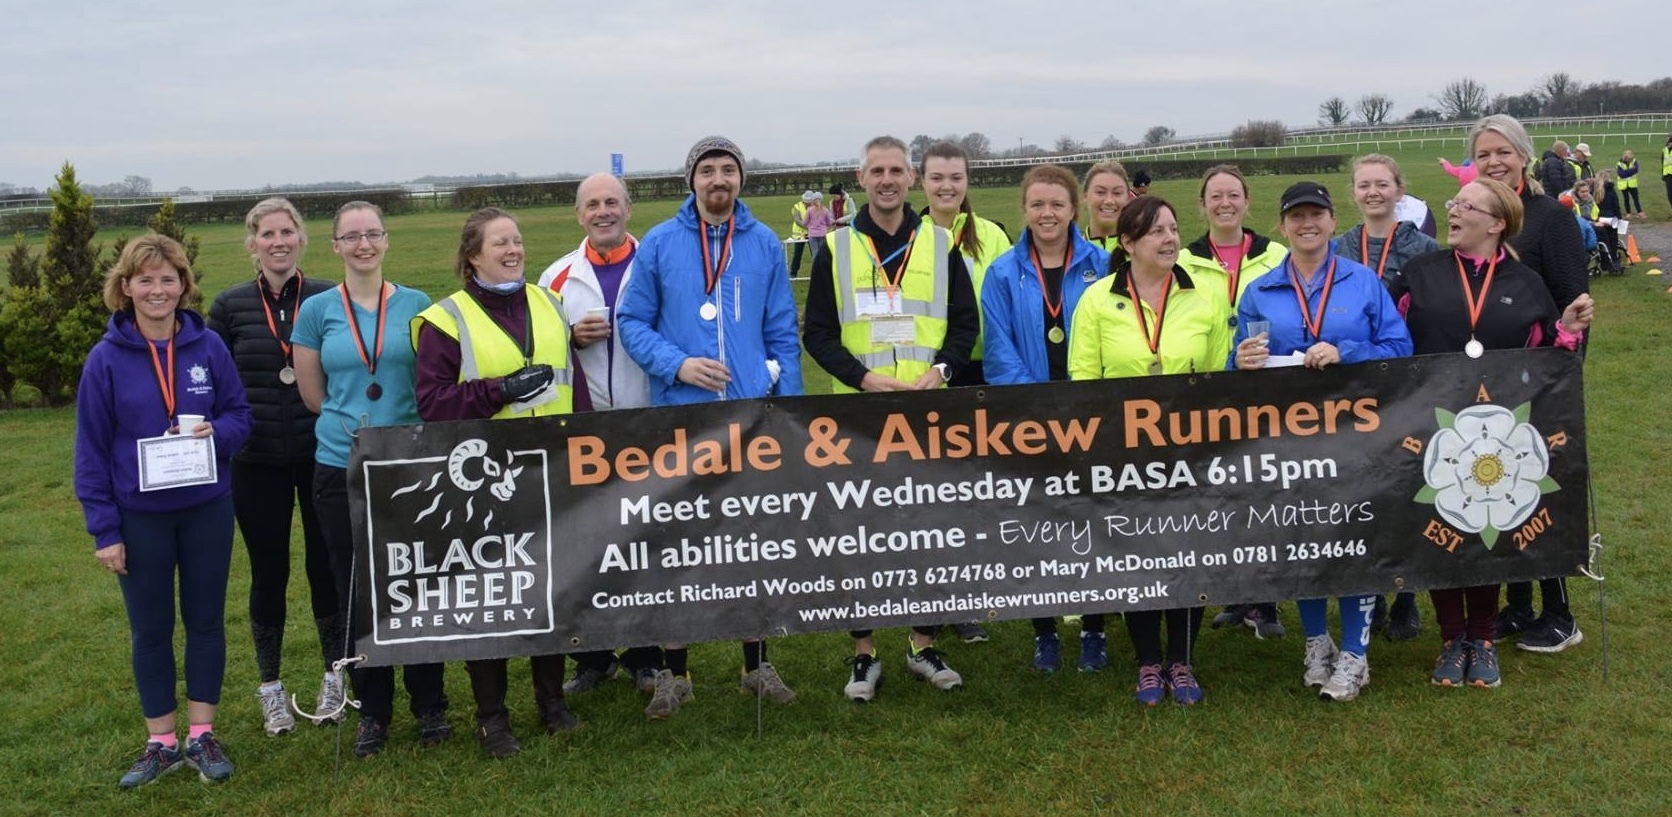 The 'Couch to 5K' runners from the Bedale and Aiskew Club having completed their first parkrun at Catterick.